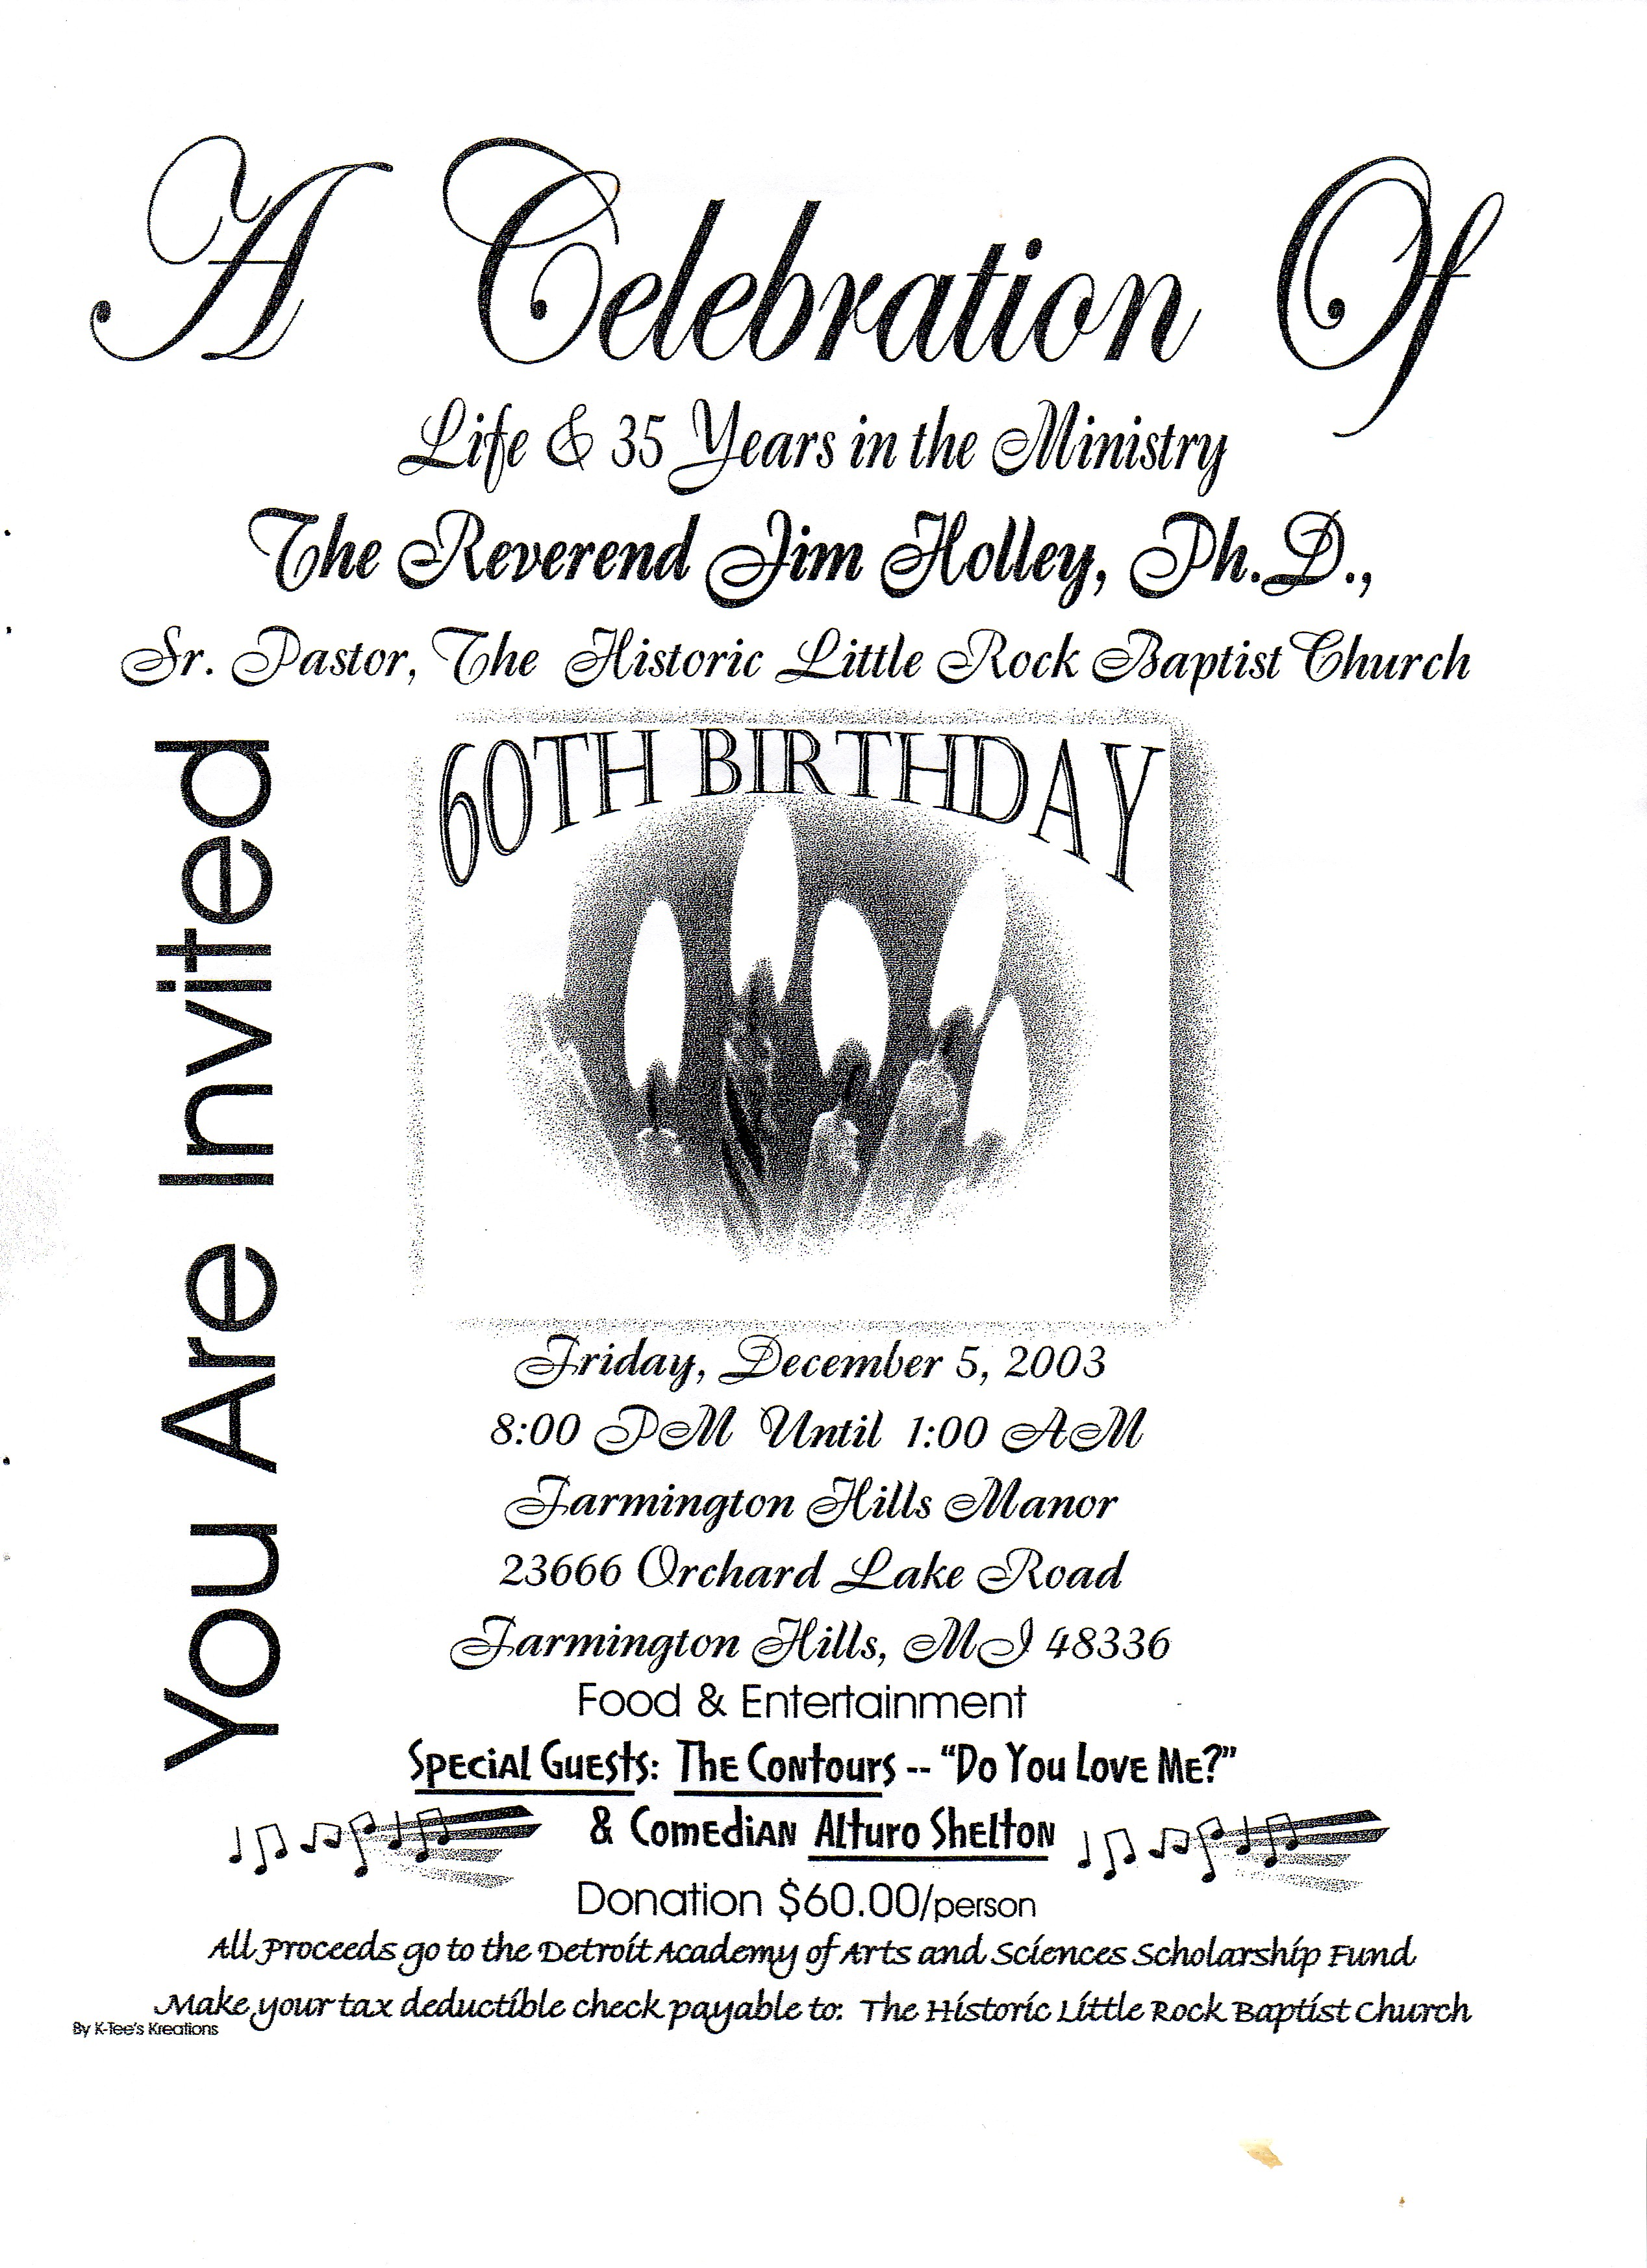 Sample Formal Birthday Party Programs http://detroitchurches.history.msu.edu/Object/A-42-150/pastors-60th-birday/